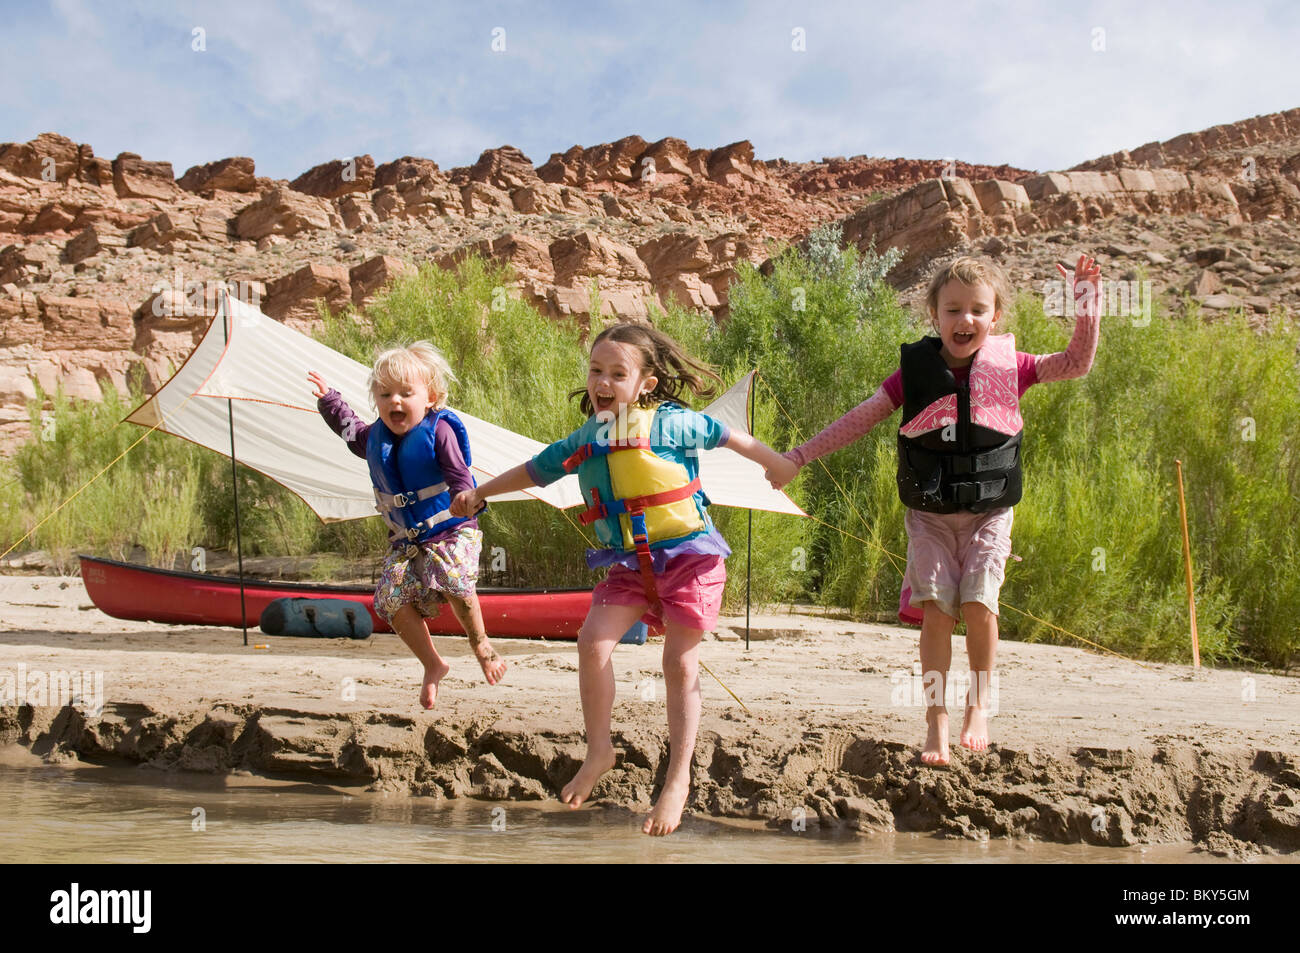 Three young girls in life jackets jumping into the San Juan River, Mexican Hat, Utah. - Stock Image